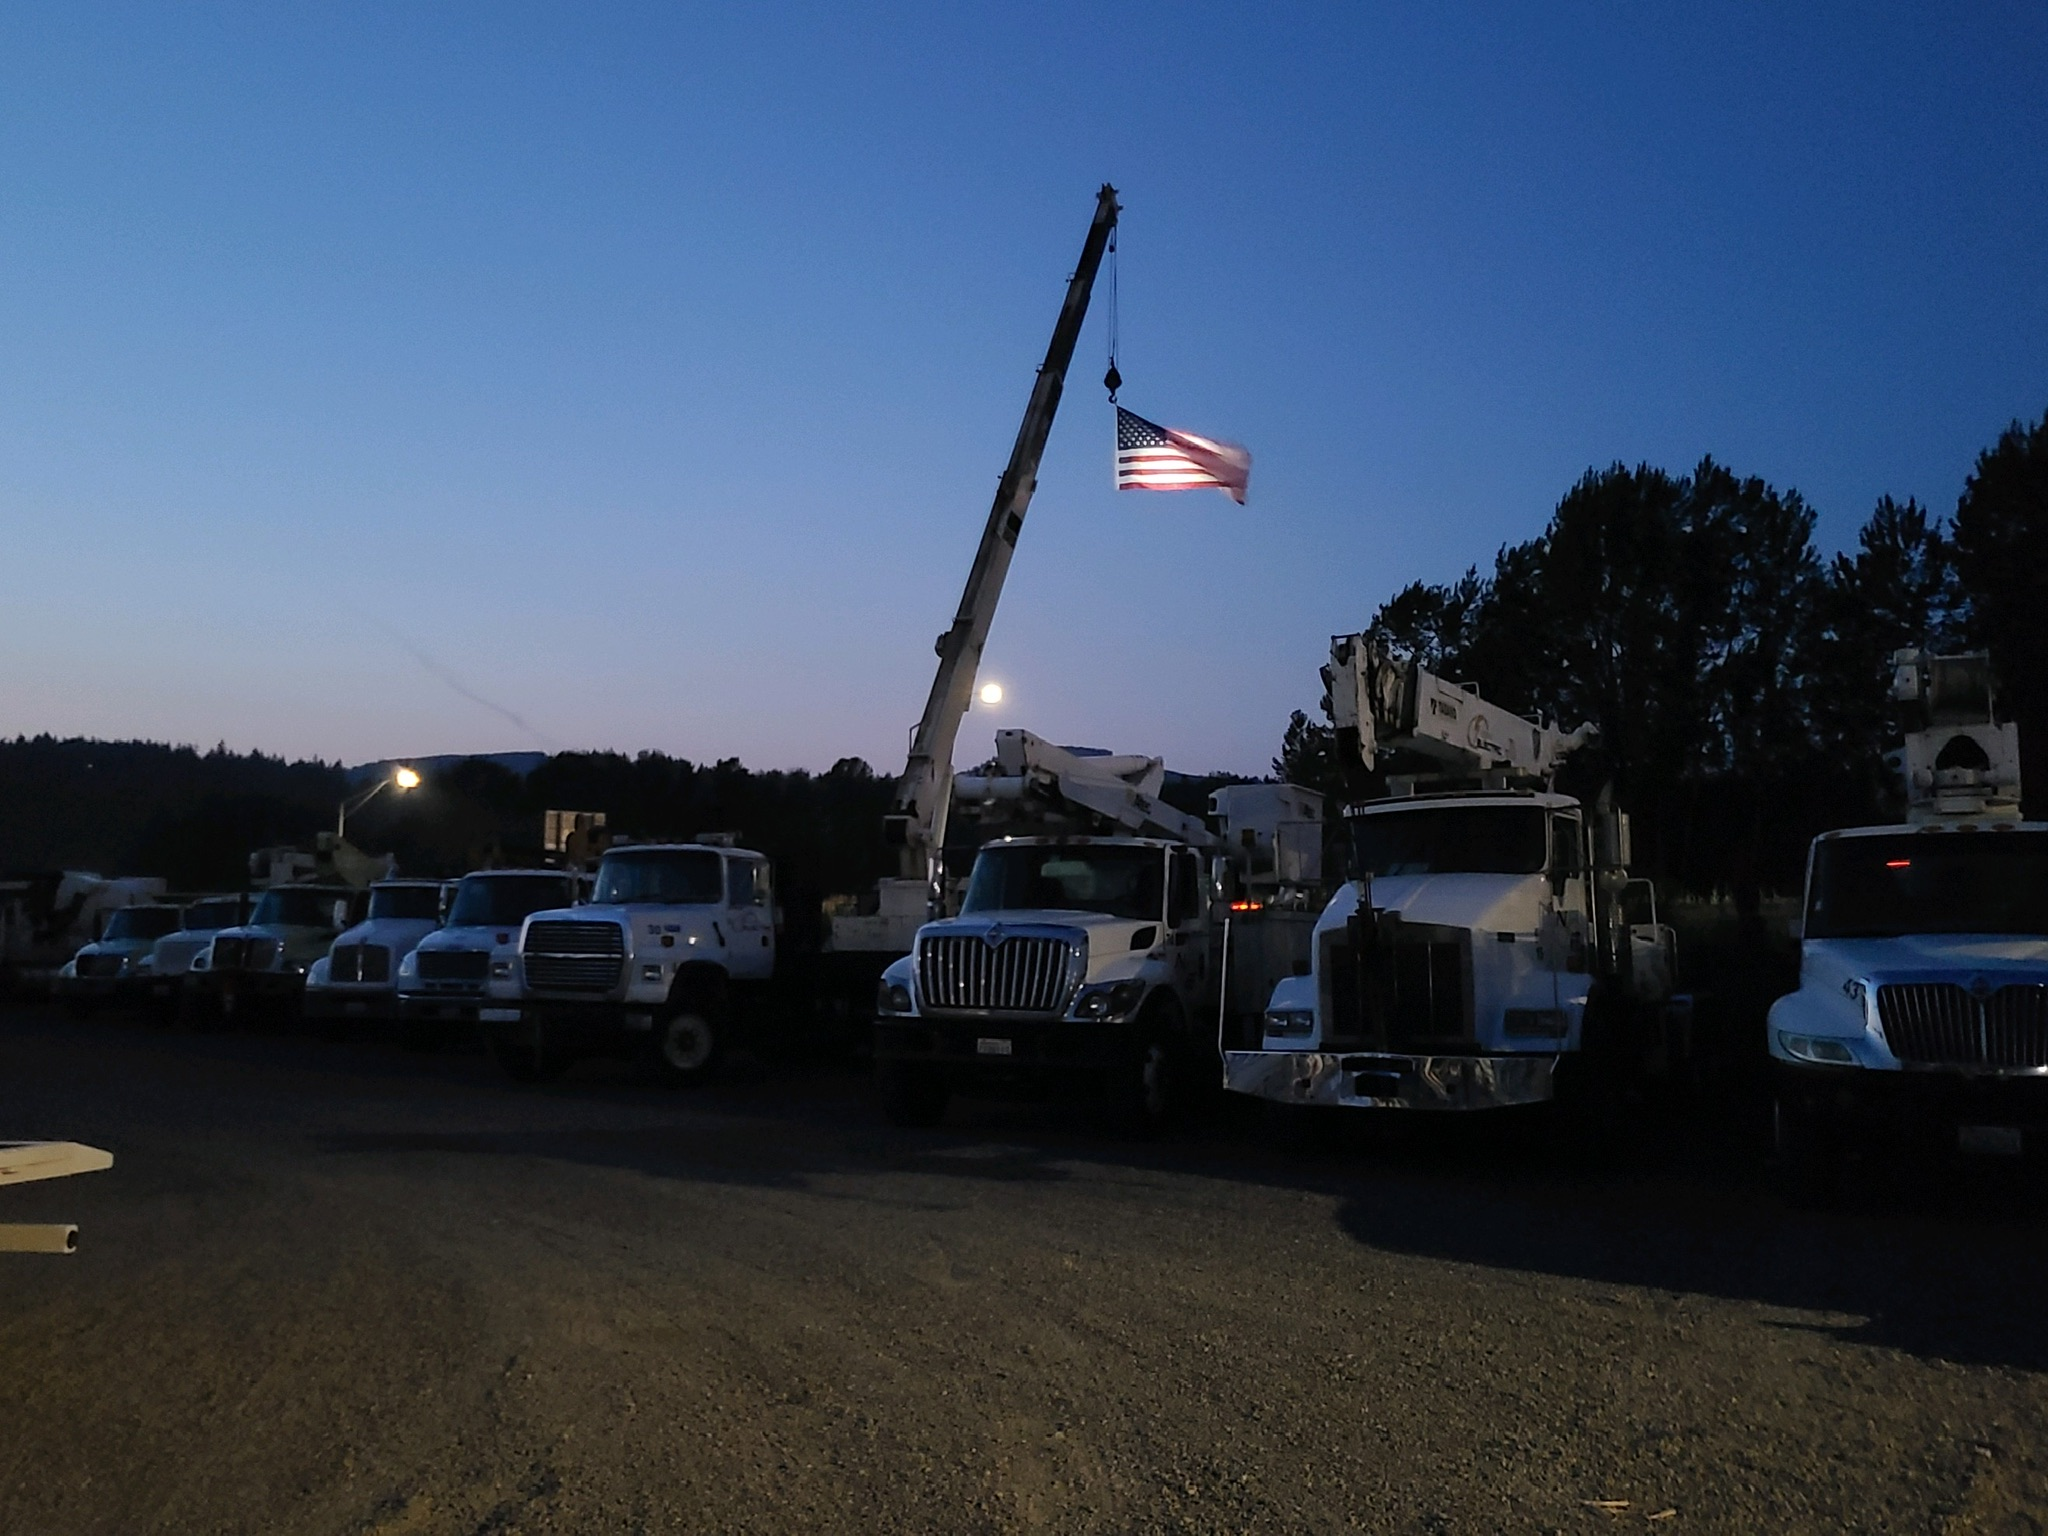 Industrial electric company fleet trucks with American flag